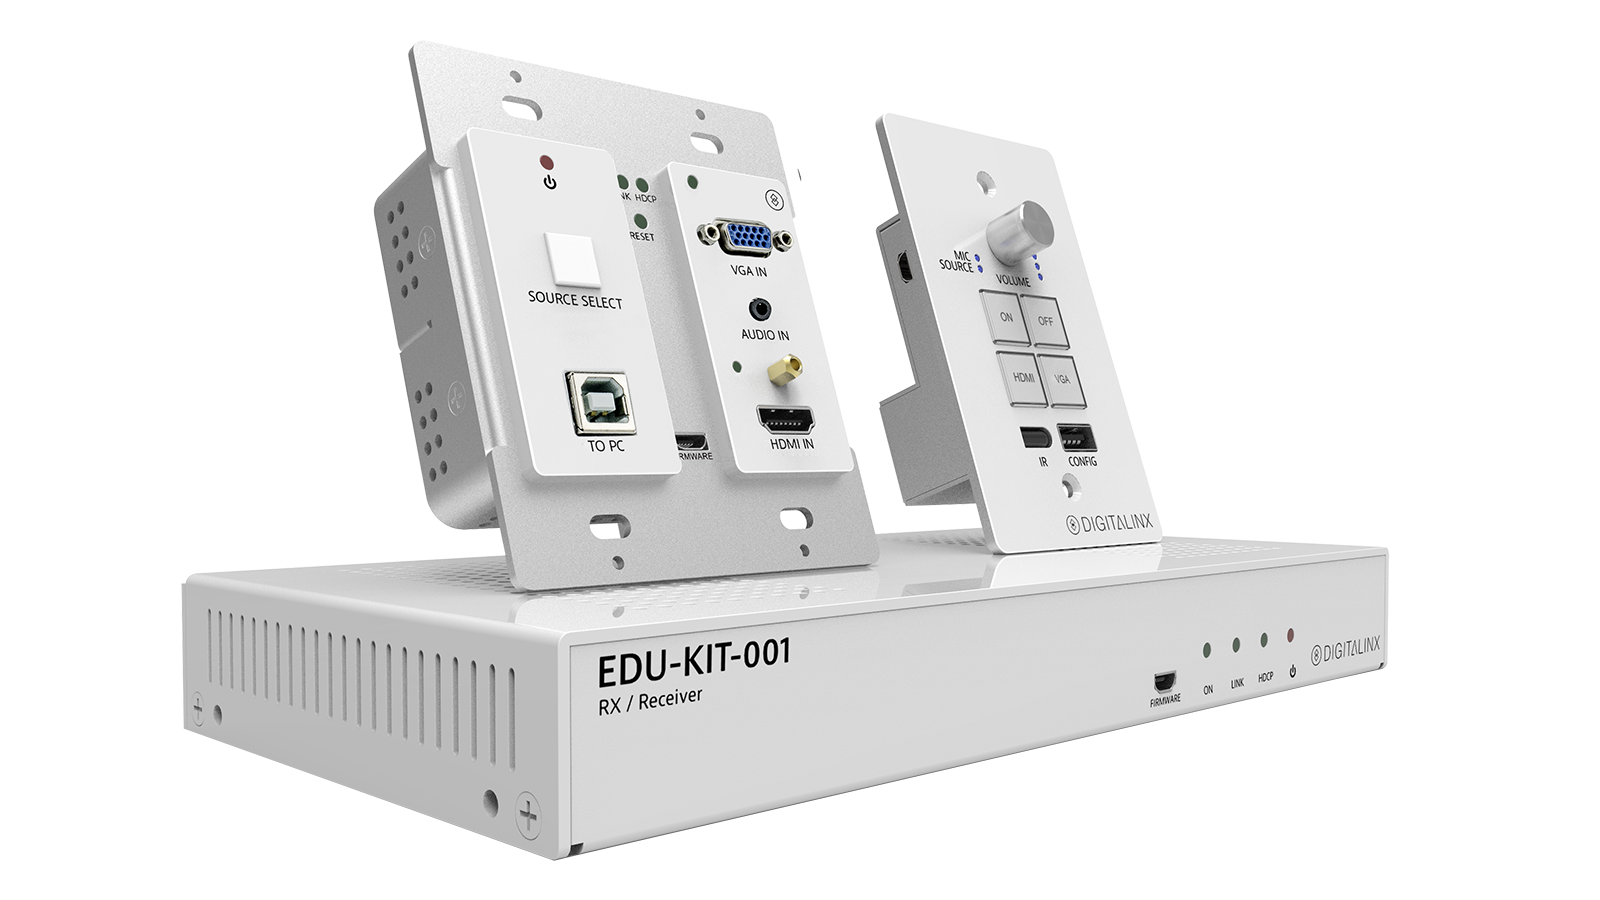 Edu Kit 1h1v Hdmi Vga Usb Av Distribution And Control System Security Electronics Systems Circuits Part 7 Nuts Volts